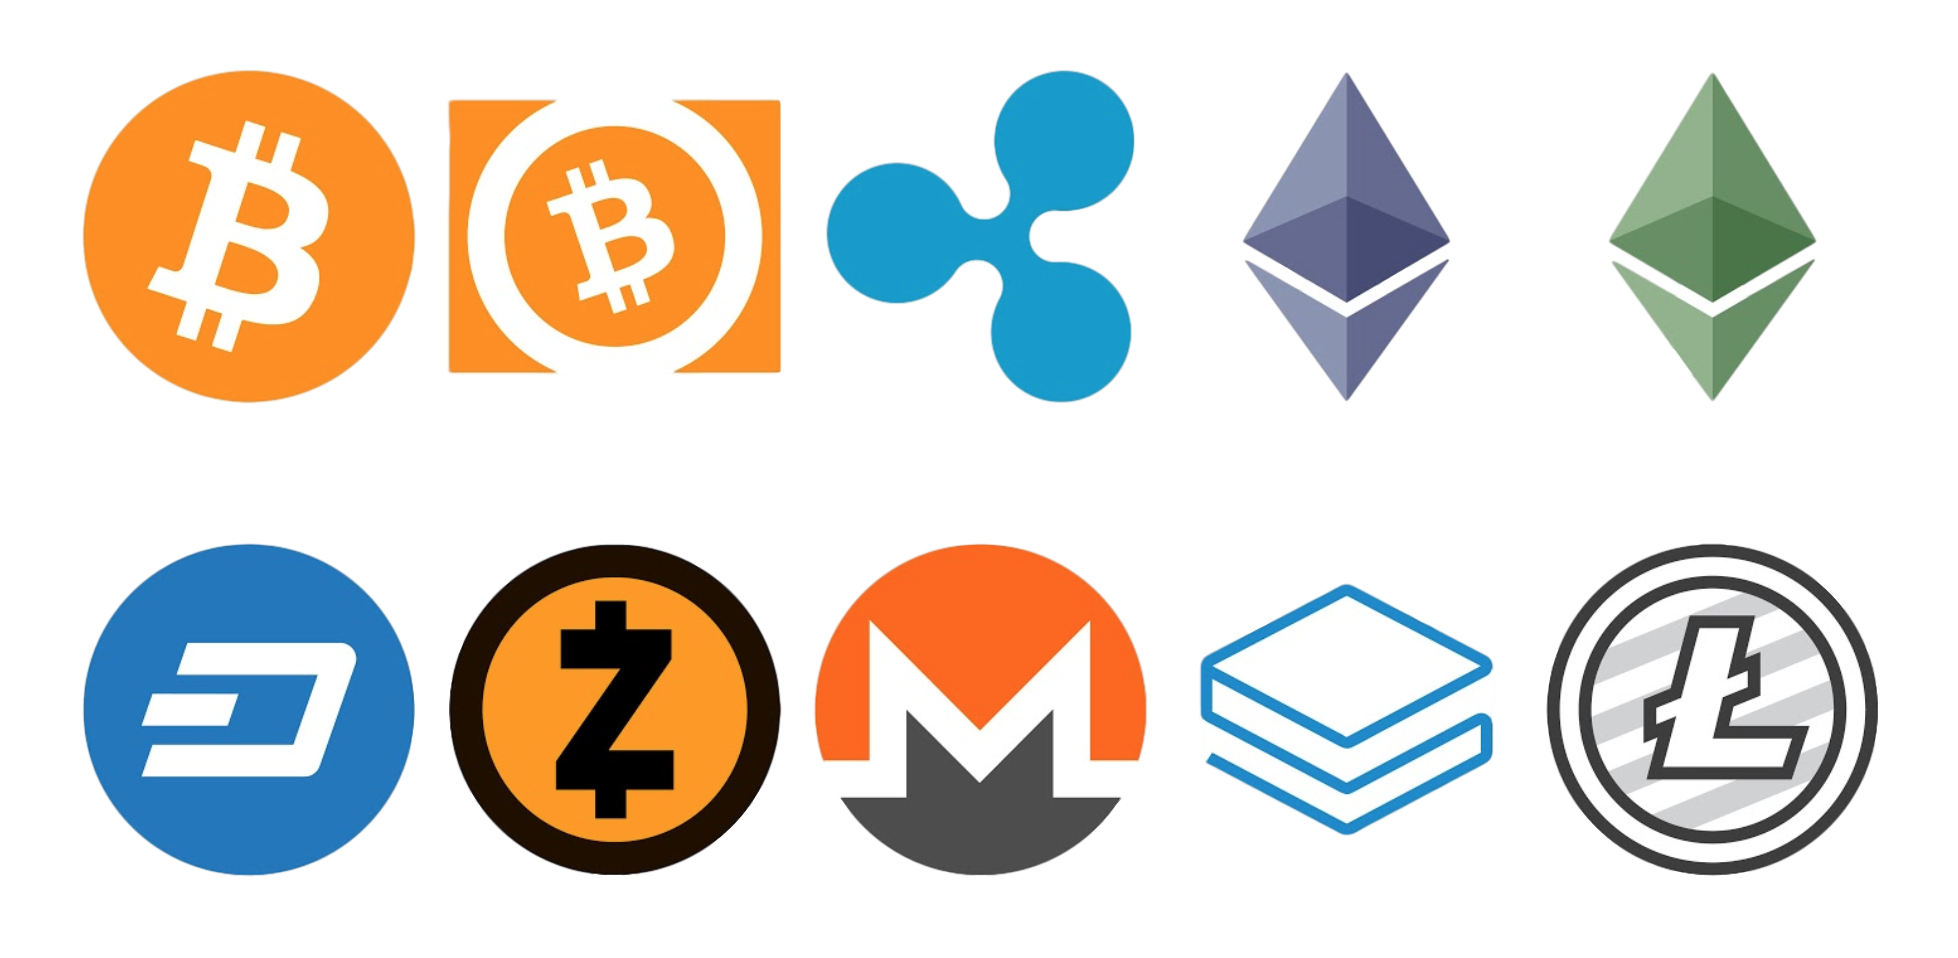 Cryptocurrency Litecoin Ethereum Bitcoin Cash Download HQ PNG PNG Image